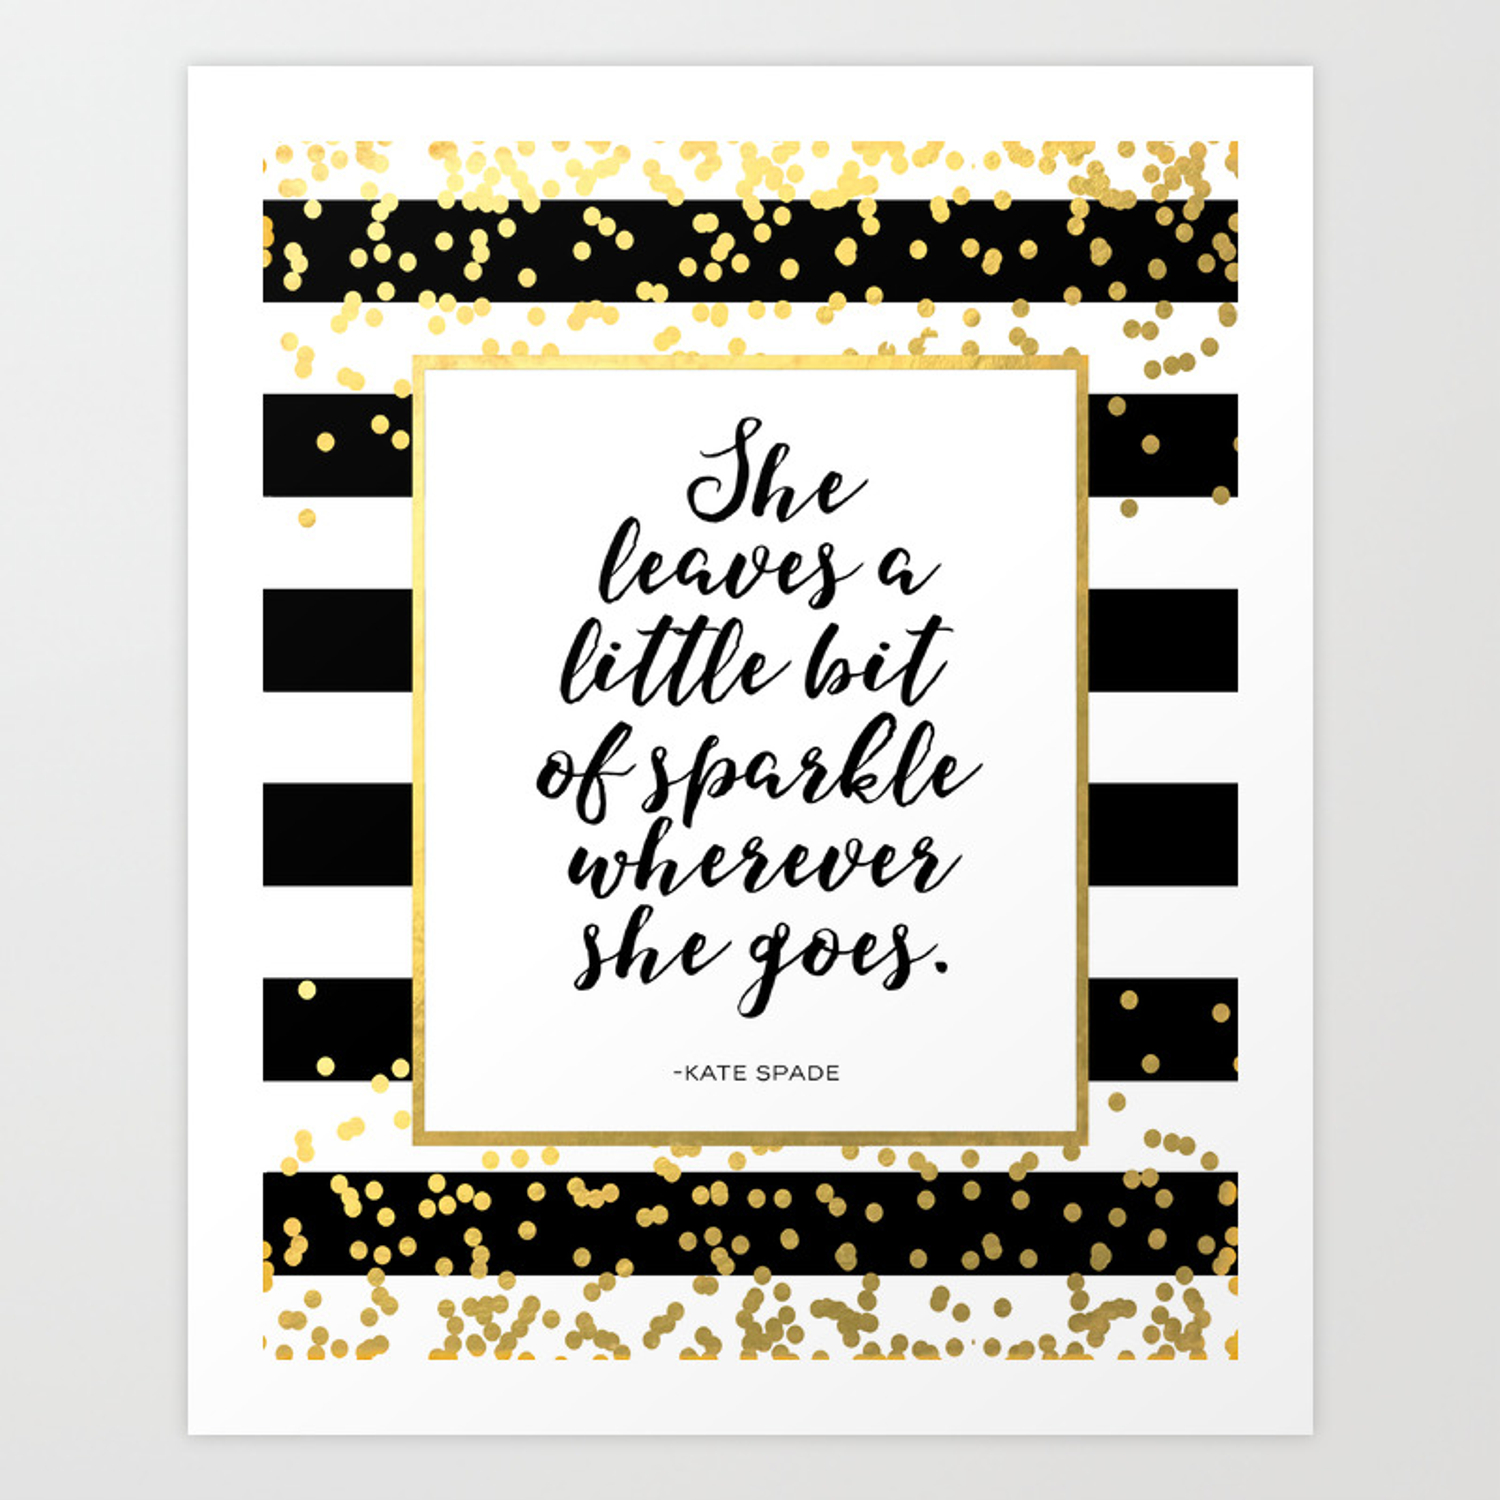 This is a graphic of Printable Room Decor intended for gold